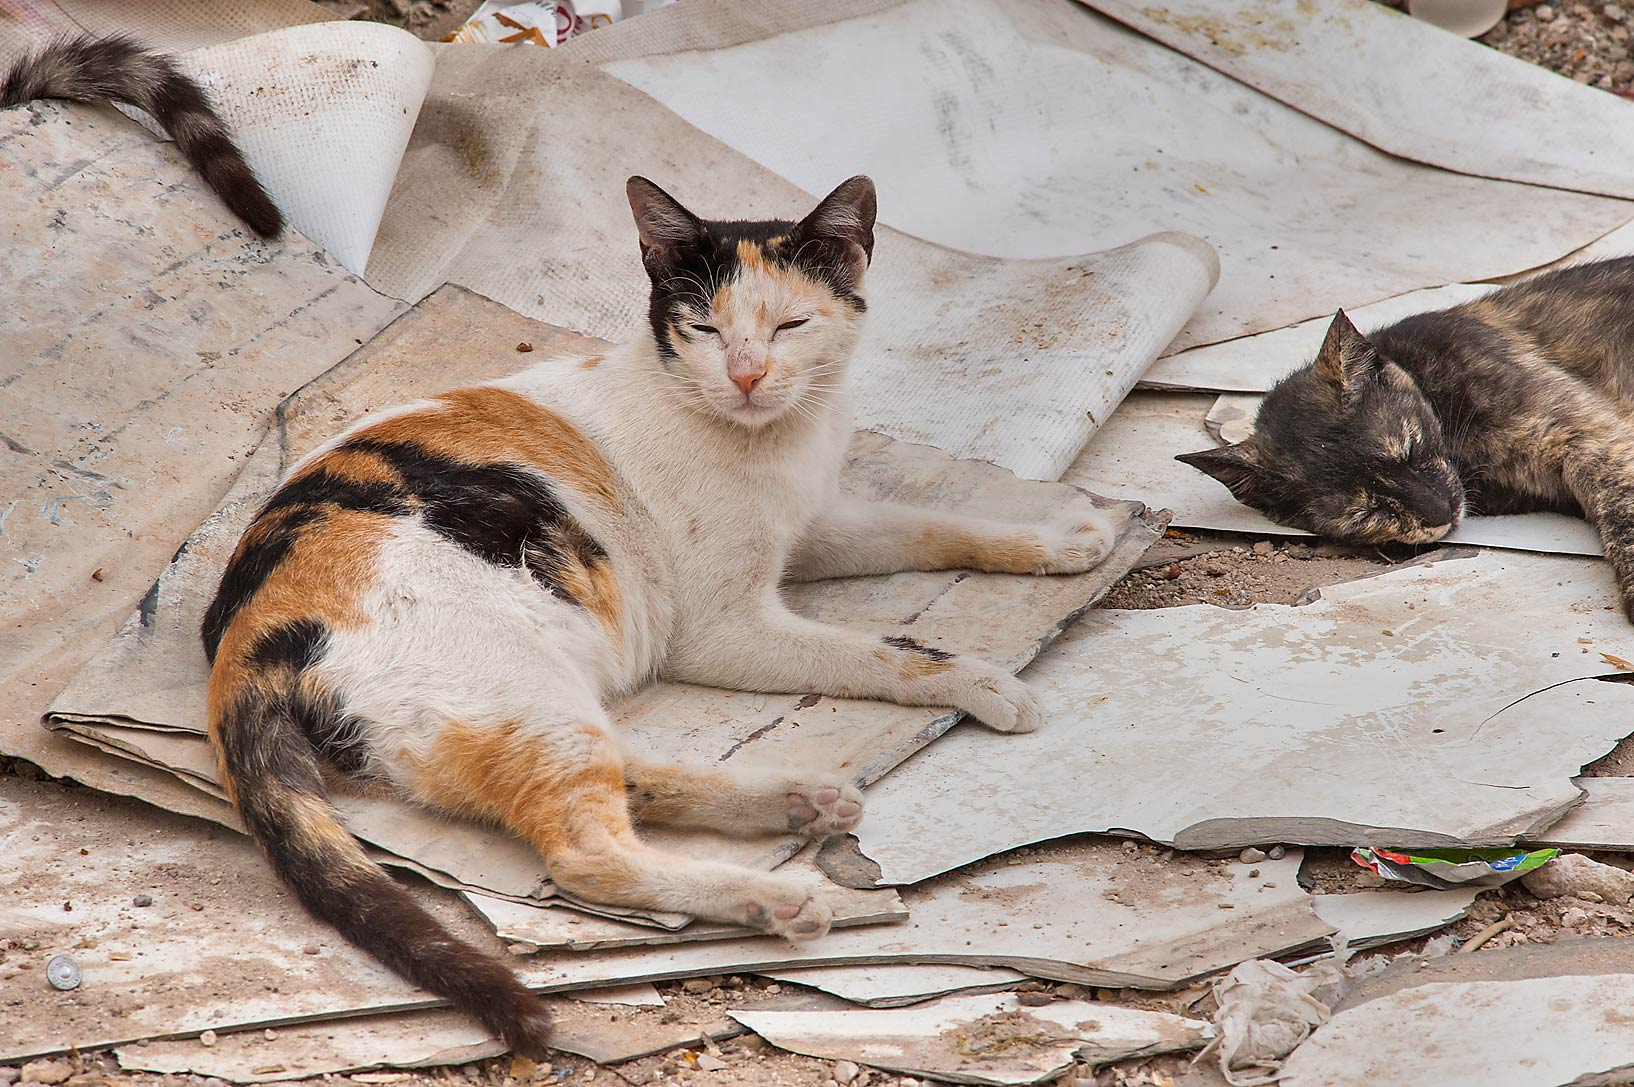 photo 140203 calico cat sleeping on sheets of plastic on